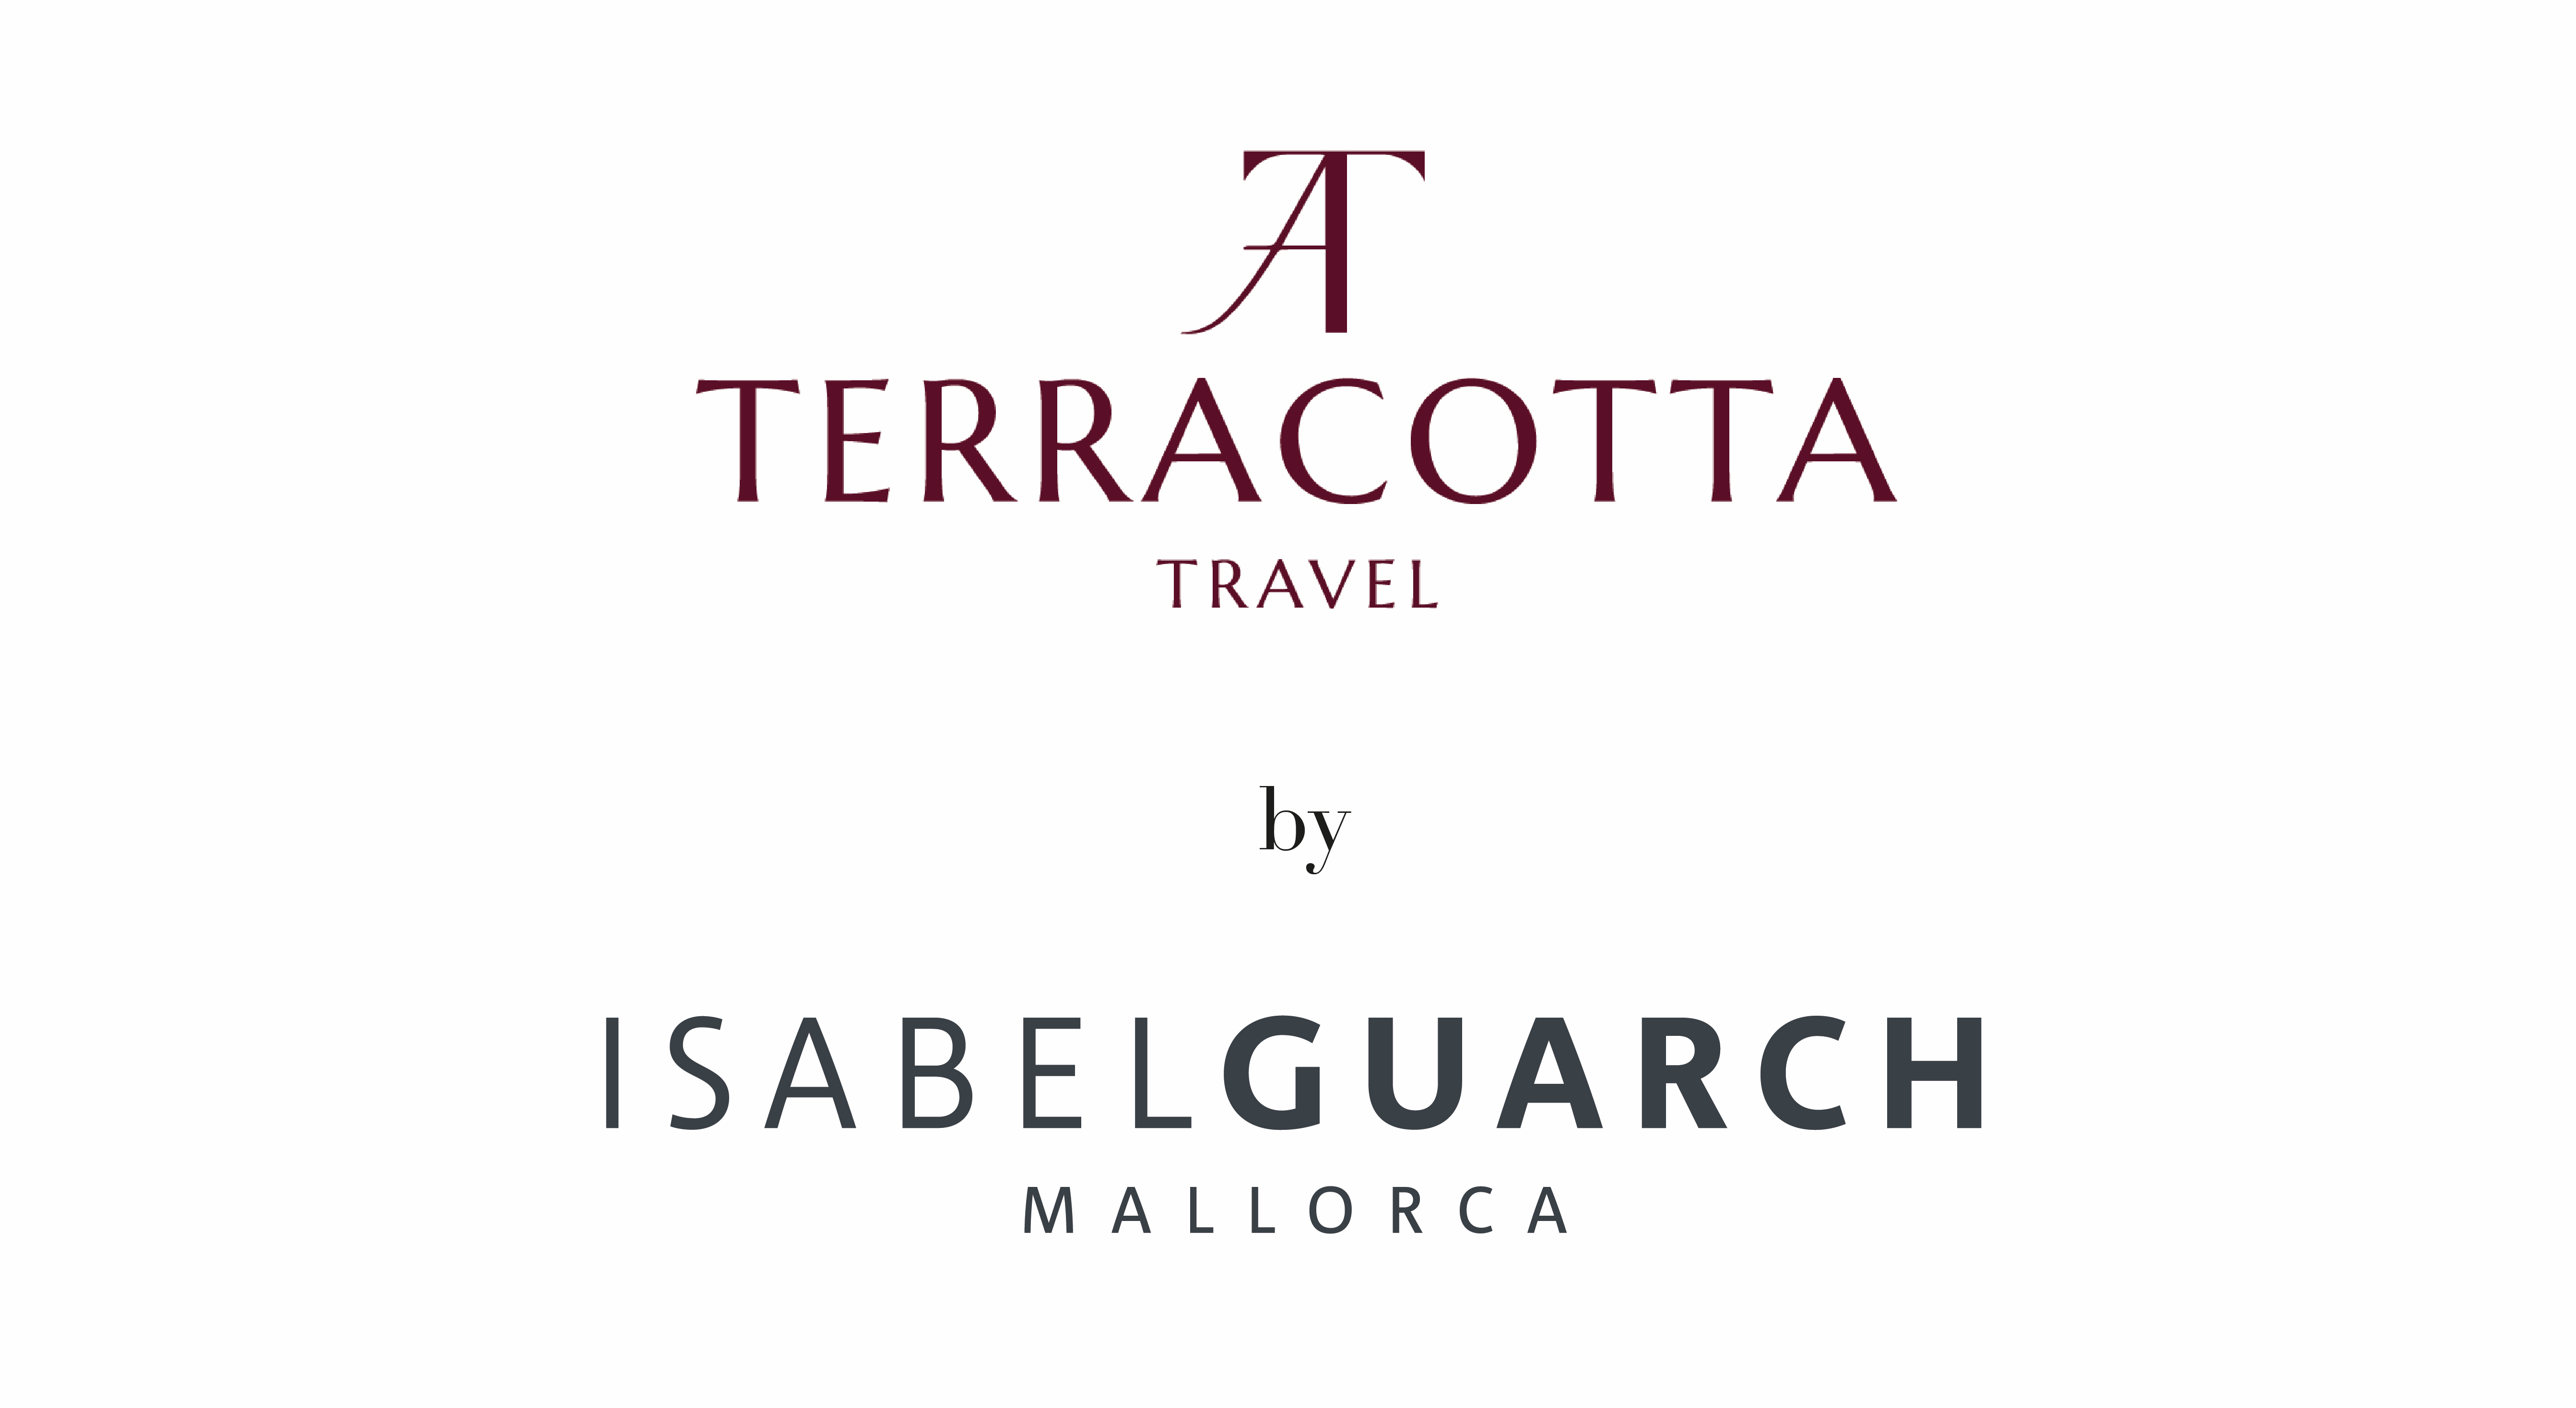 Terracotta by Isabel Guarch